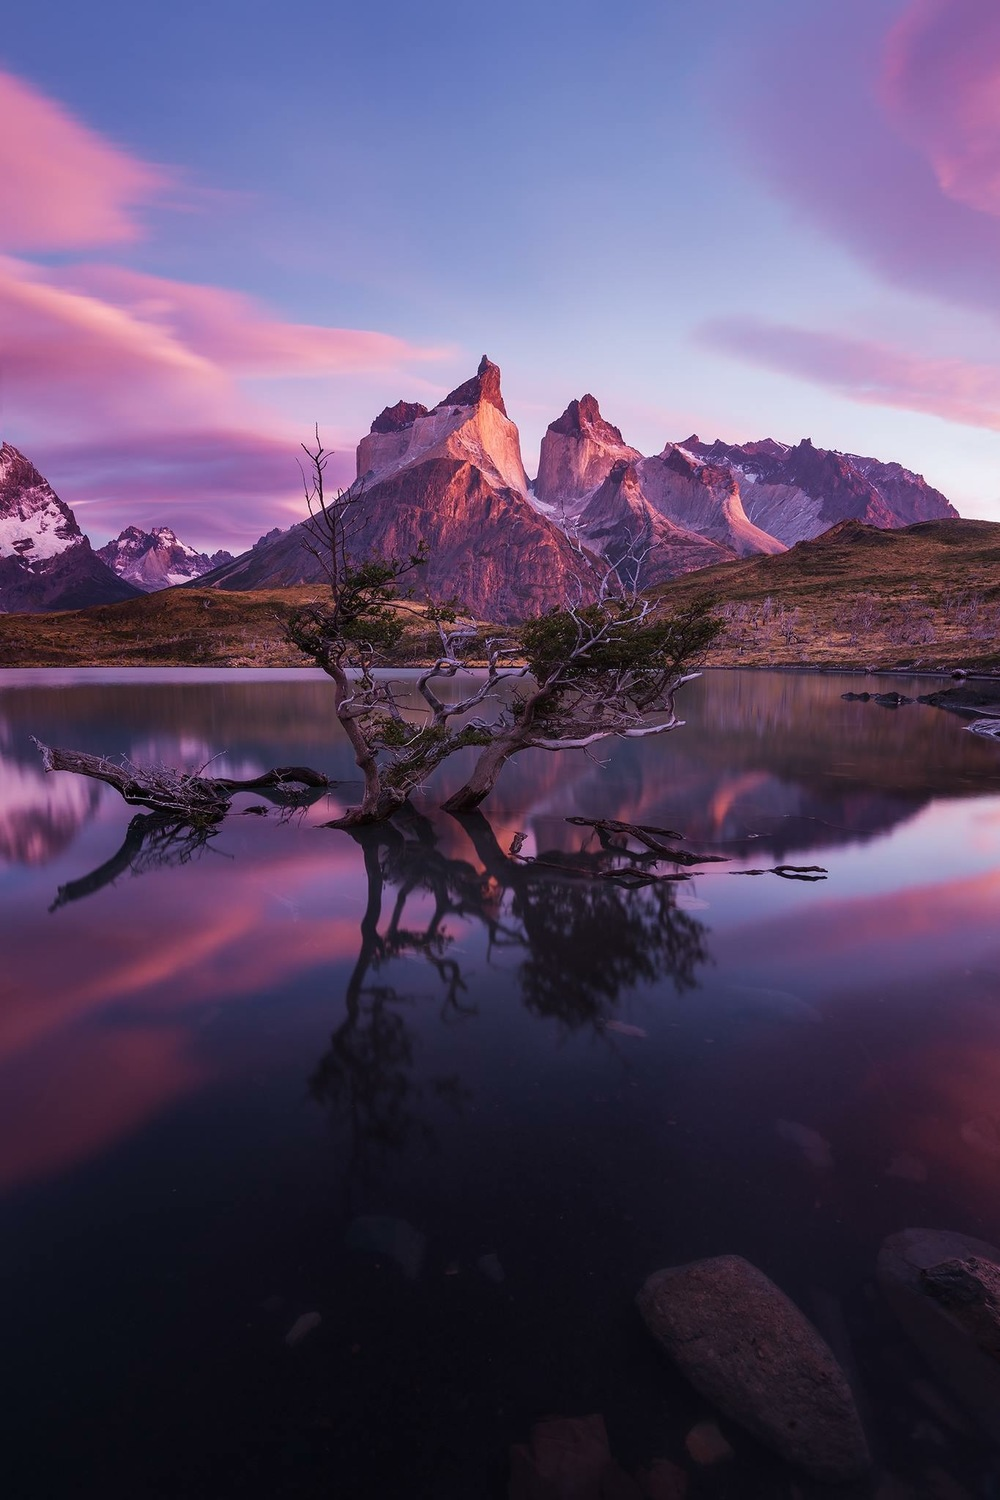 sunrise patagonia jake anderson this world exists thisworldexists